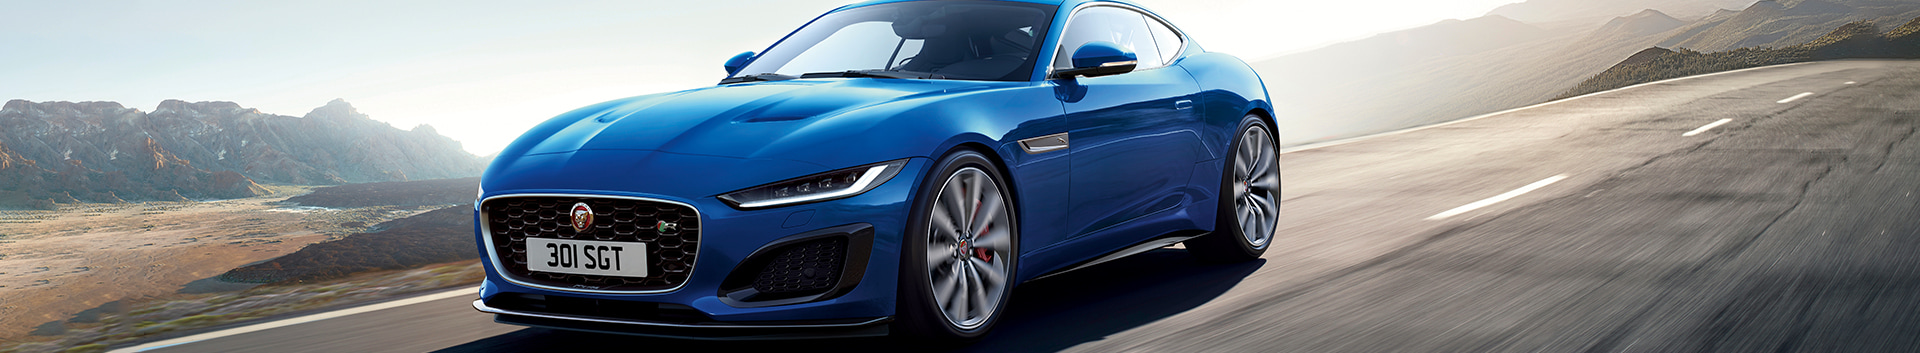 Front 3/4 exterior view of the Jaguar 2021 F-Type driving through the highway